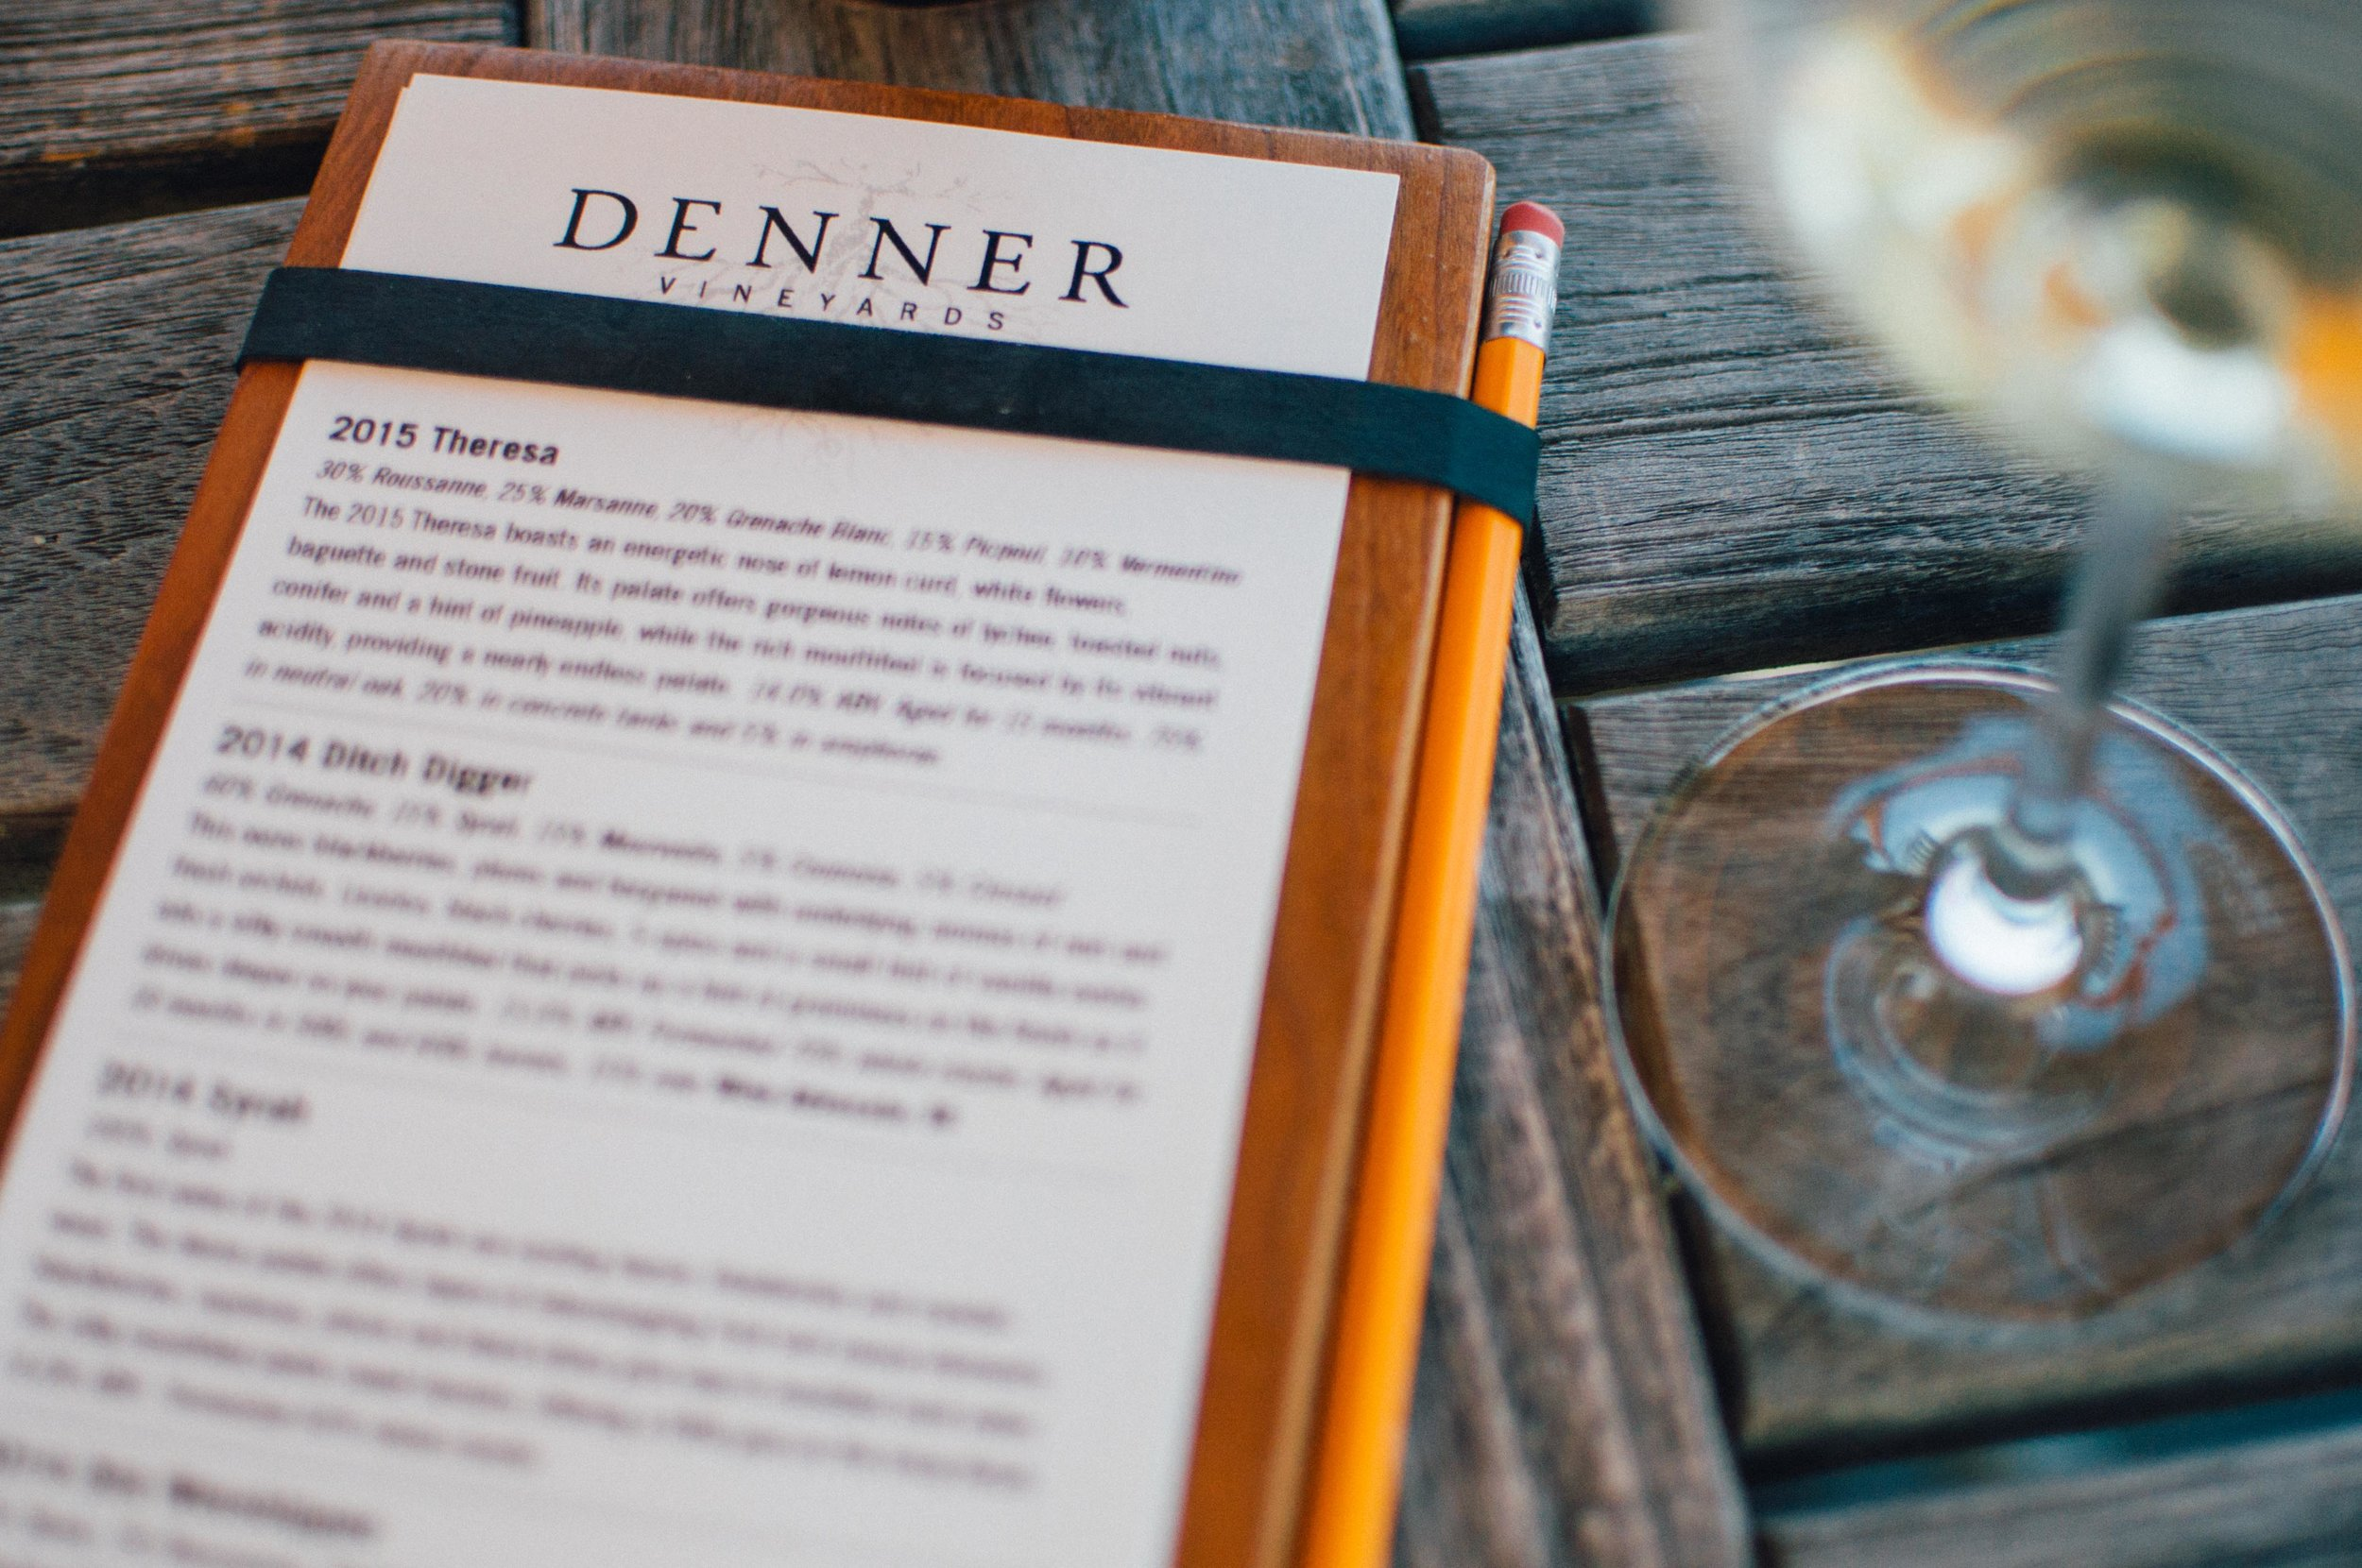 Denner Vineyards is a true retreat. It has one of the most scenic patios in Paso where tastings are served tableside. We enjoyed a quiet Sunday morning with our tasting room staff member, David, who was incredibly helpful with local recommendation.